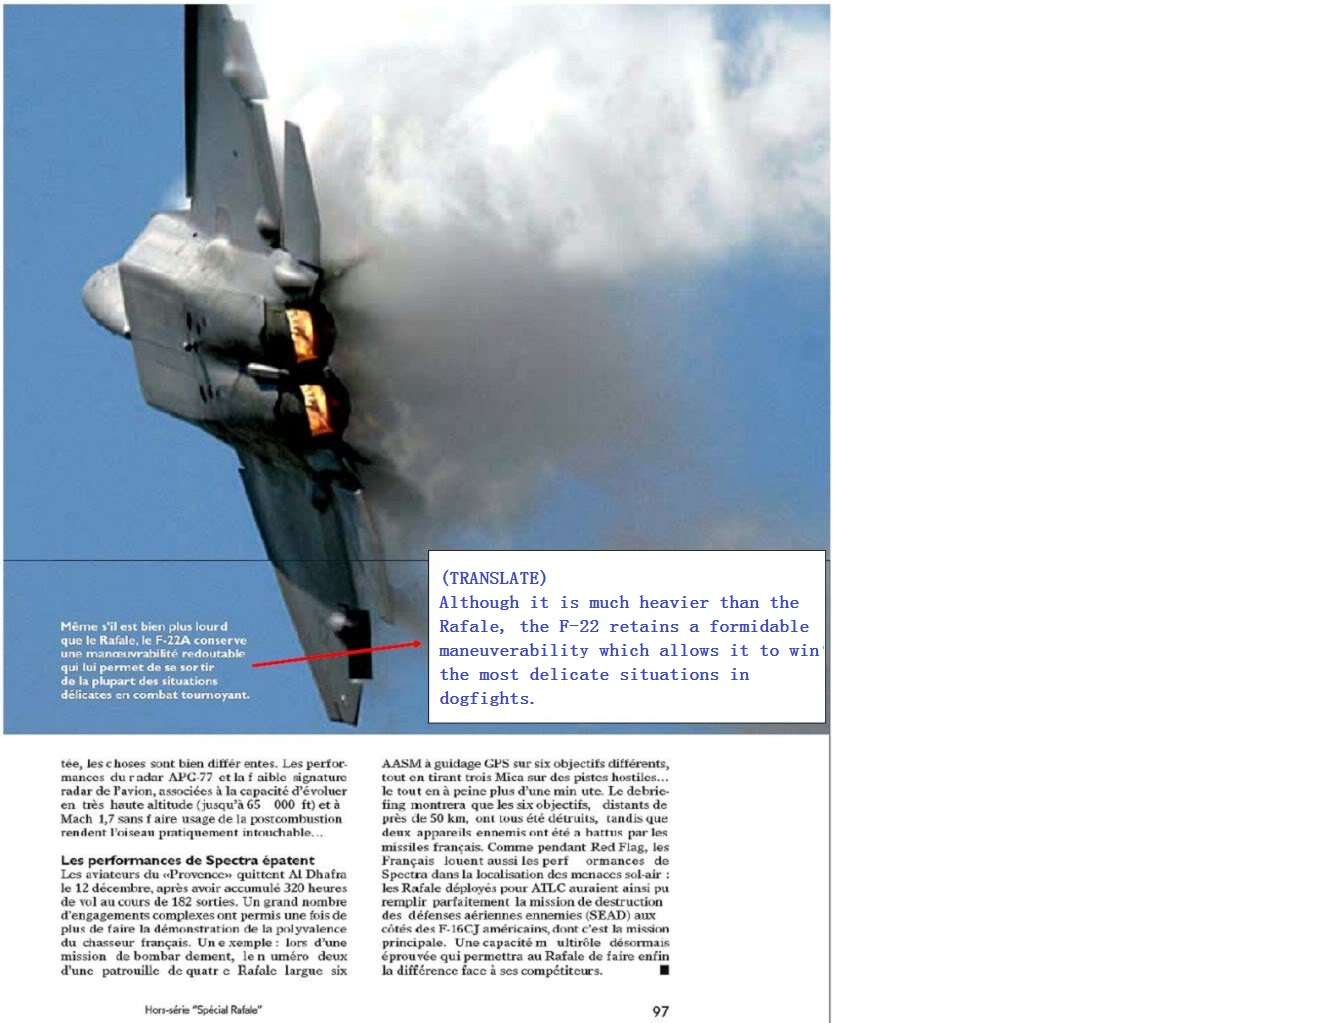 F-22 vs Rafale dogfight results - French souce - General F